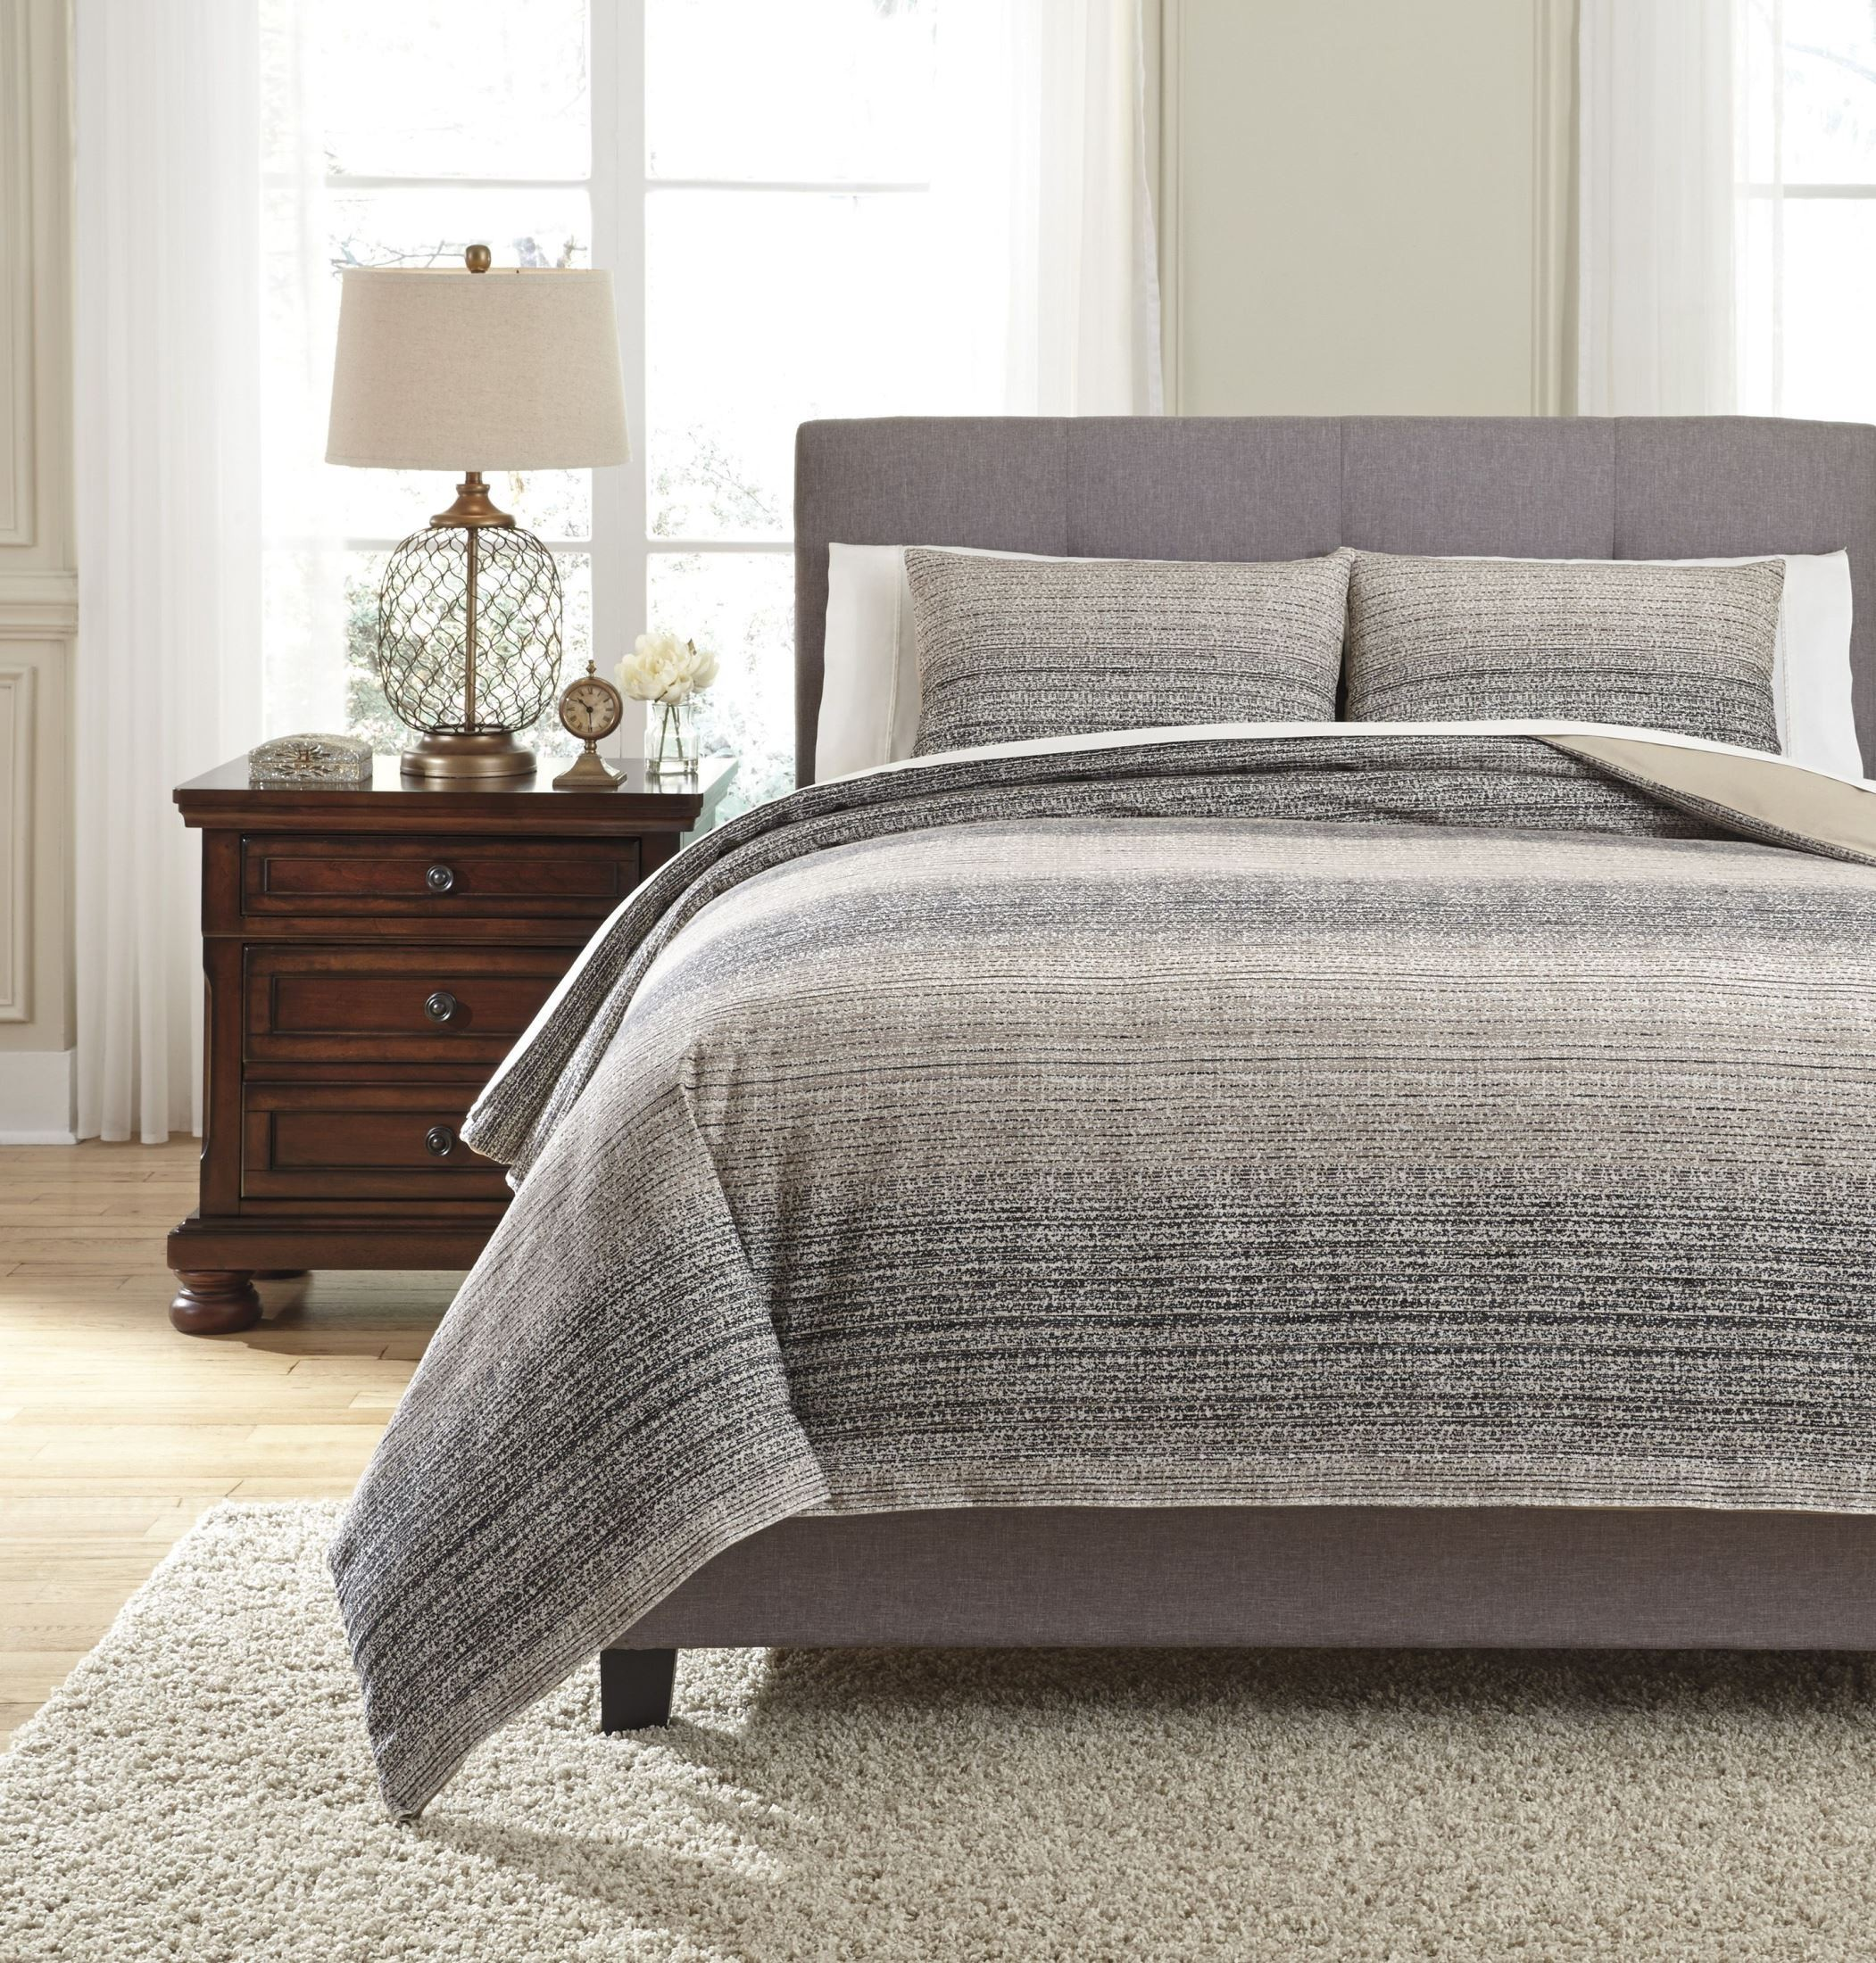 Quilt Cover King Arturo Natural And Charcoal King Duvet Cover Set